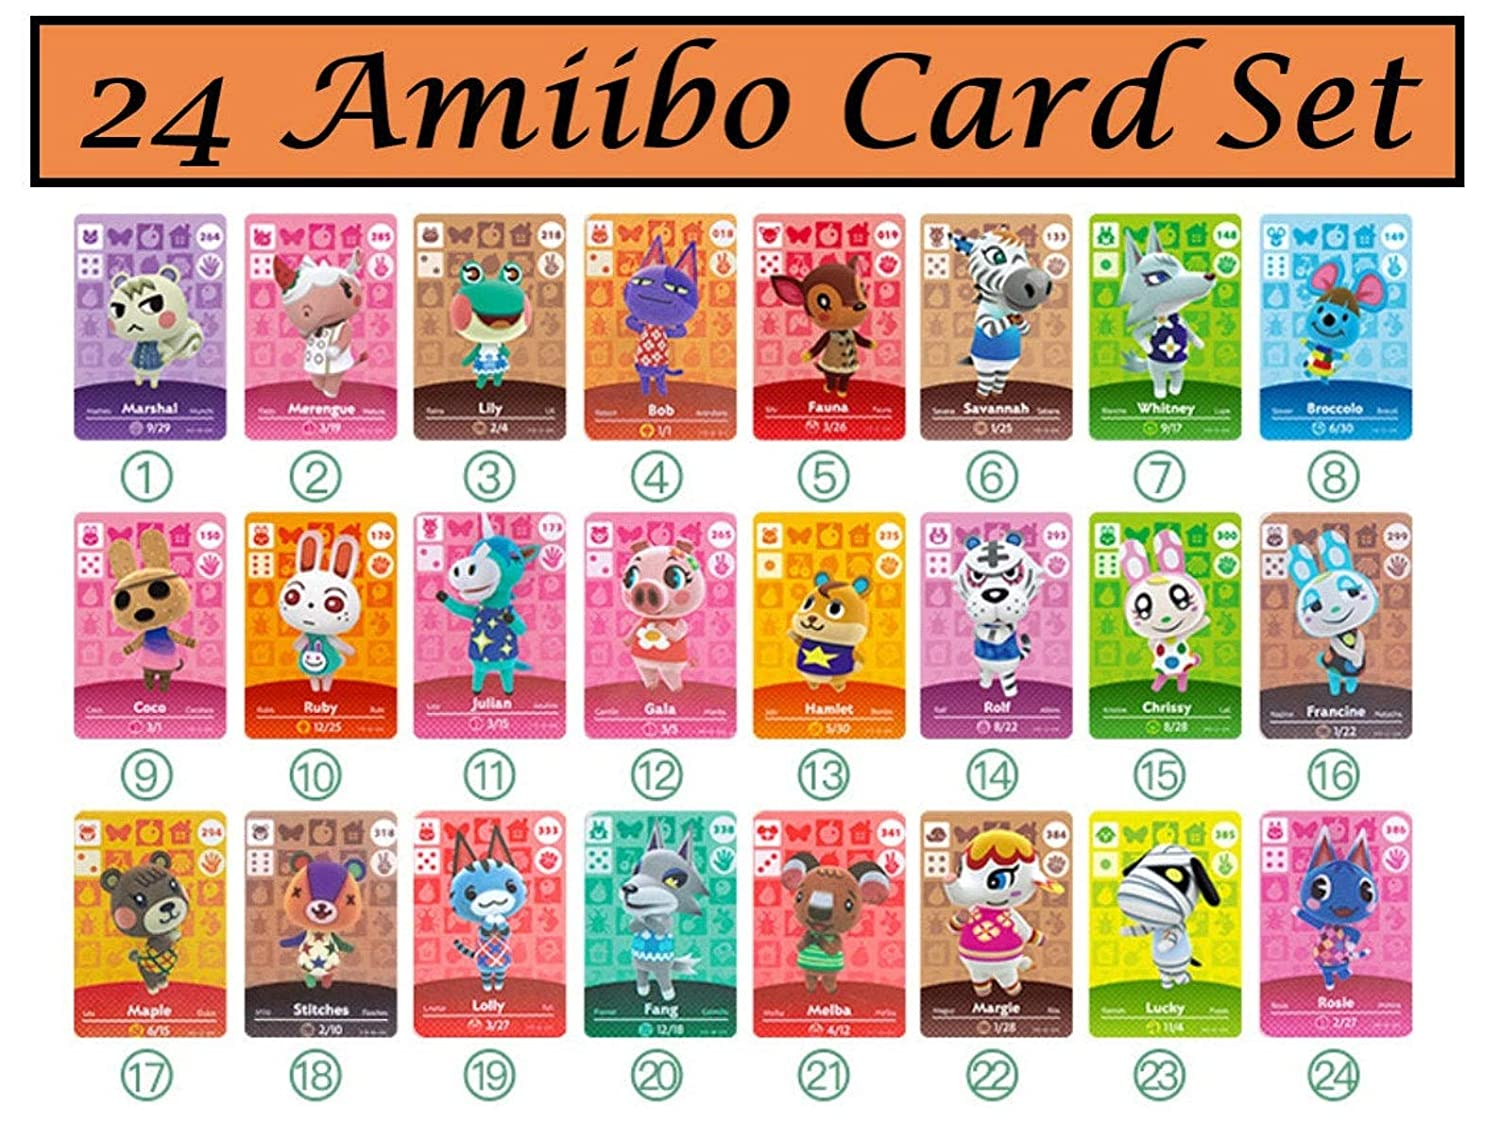 Animal Crossing NFC Tag Mini Amiibo cards 24pcs Rare Character Villager for Switch/Switch Lite/Wii U (with card holder and thumb stick grip caps)